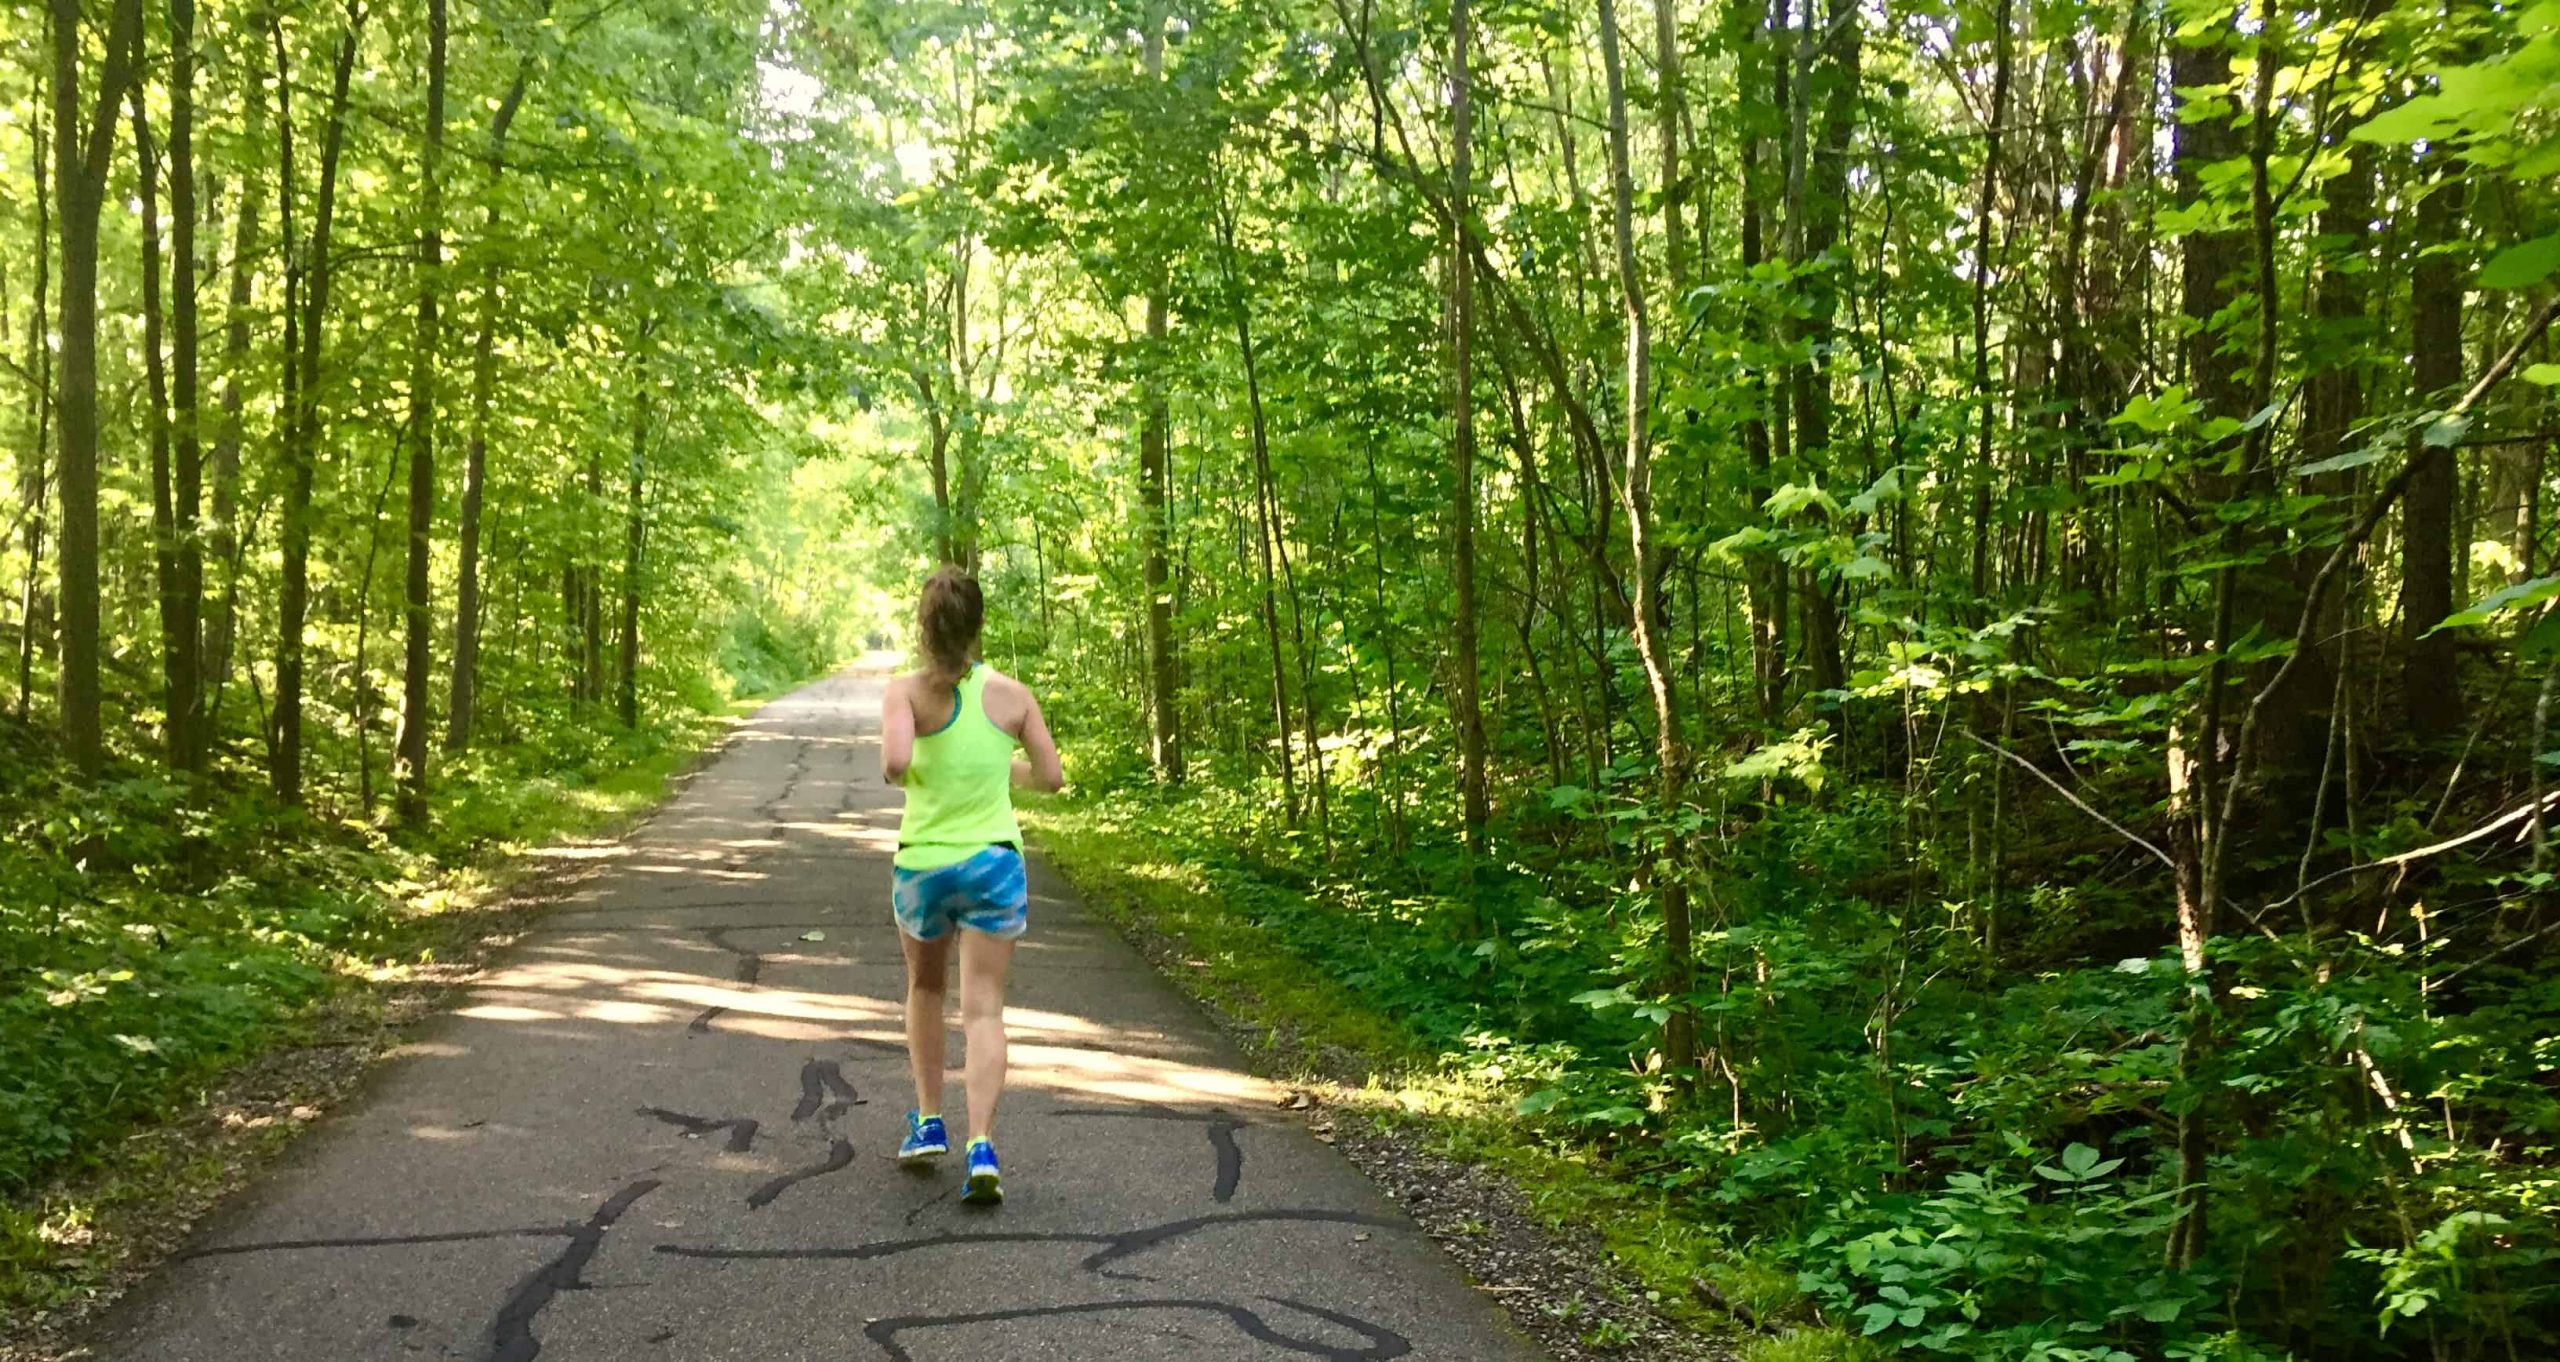 These 10 long run tips will help you make the most of long distance running. Check out everything you need to know about long run recovery, fuel, motivation and more during training. #longrun #longdistance #longruntips